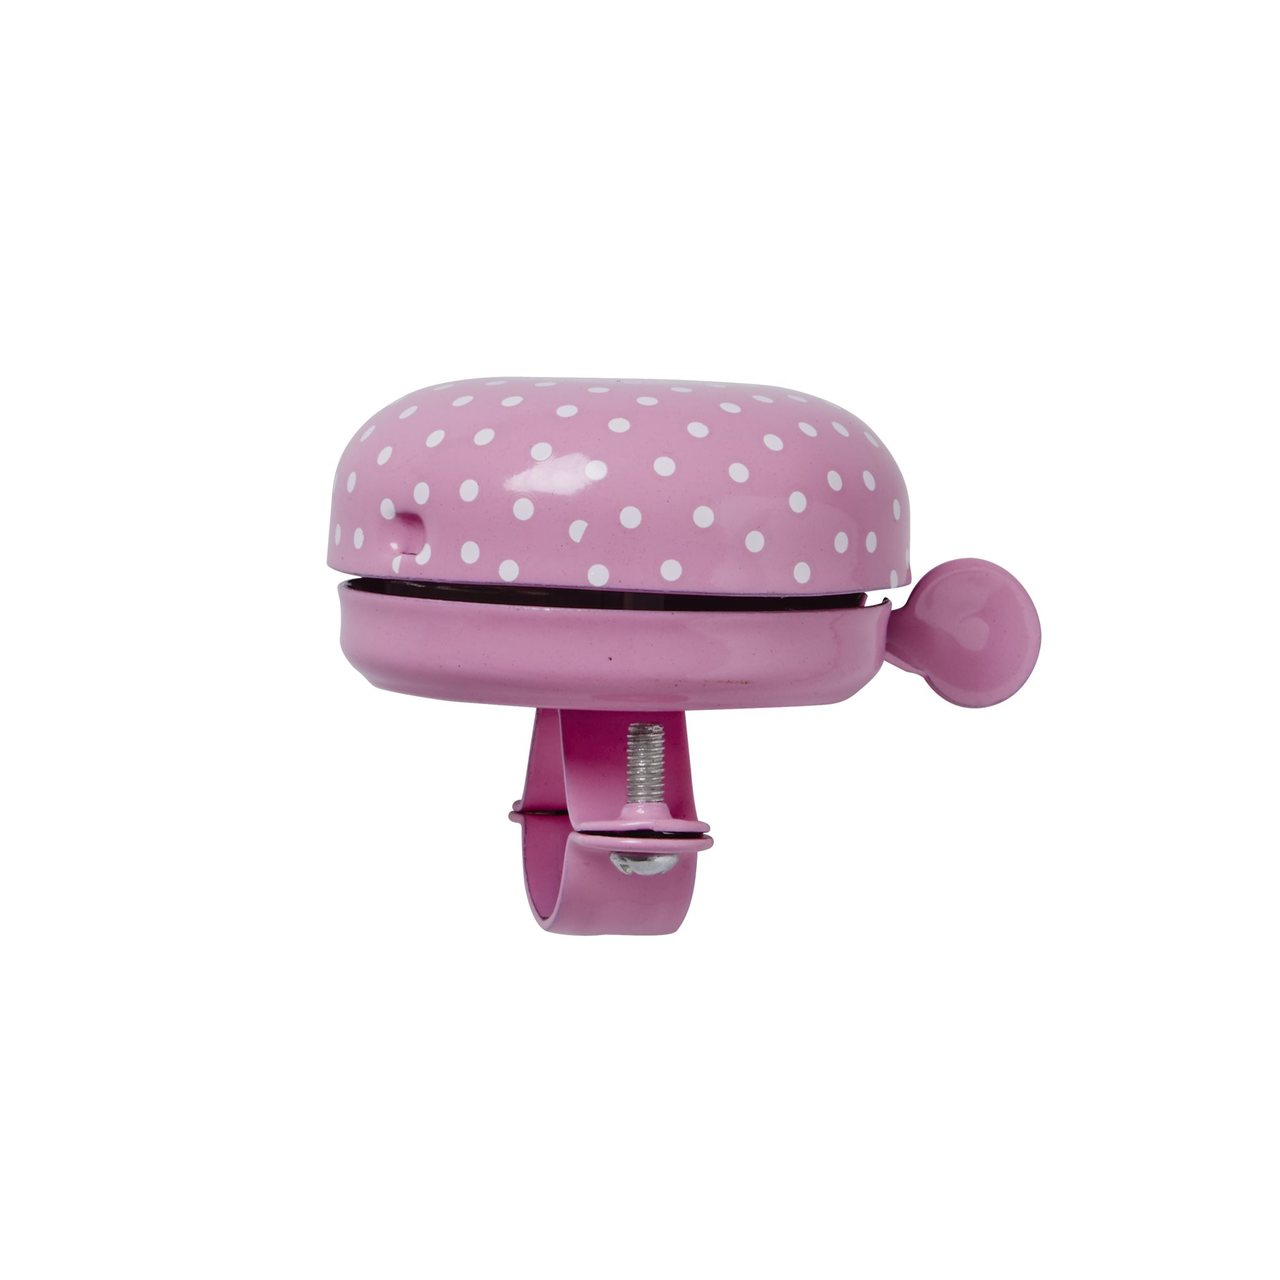 Bike Bell, Pink with white dots